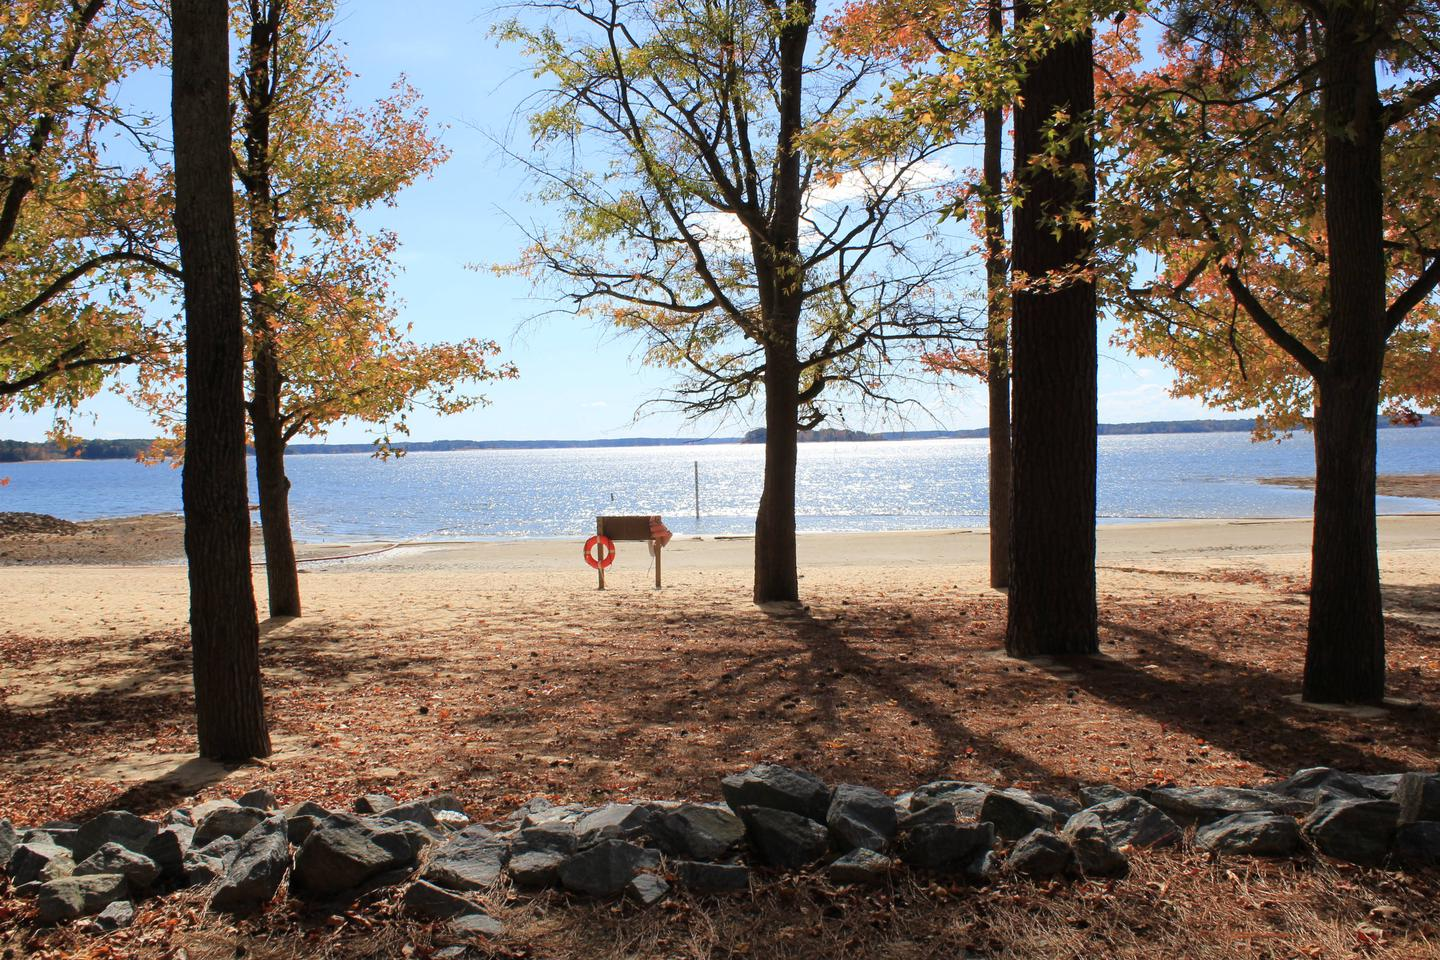 NBP DUAWelcome to North Bend Park! This is the Day Use Area Beach located in North Bend Park.